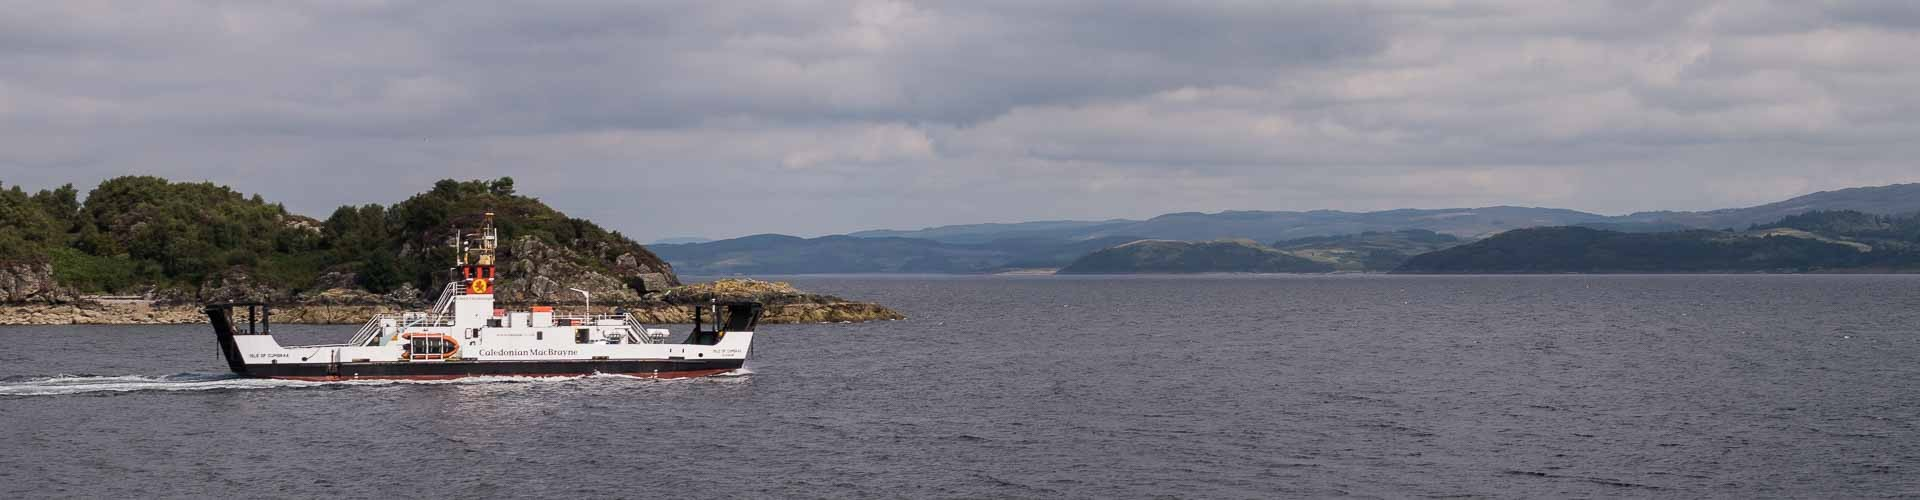 Isle of Cumbrae leaving Tarbert